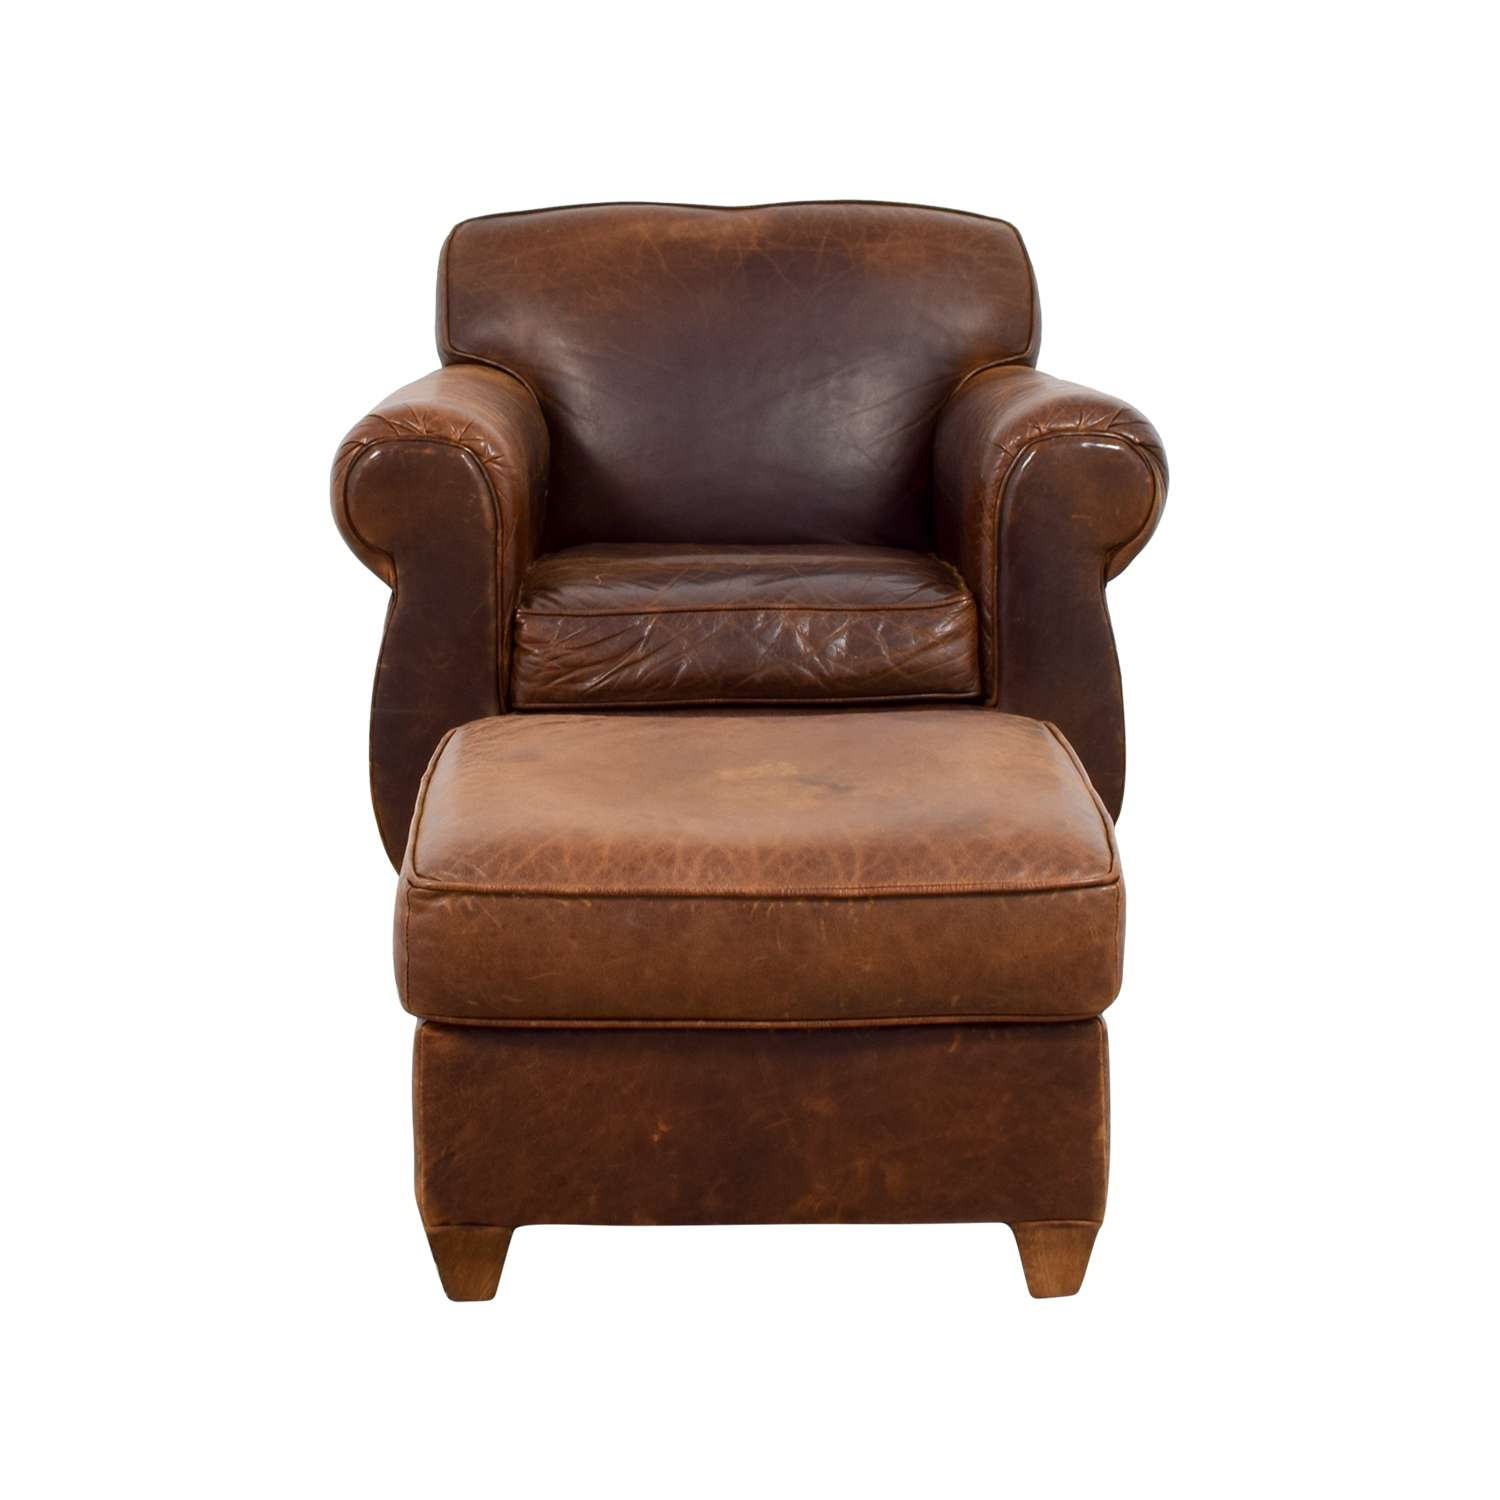 Restoration Hardware Restoration Hardware 1940s Moustache Leather Chair and Ottoman coupon